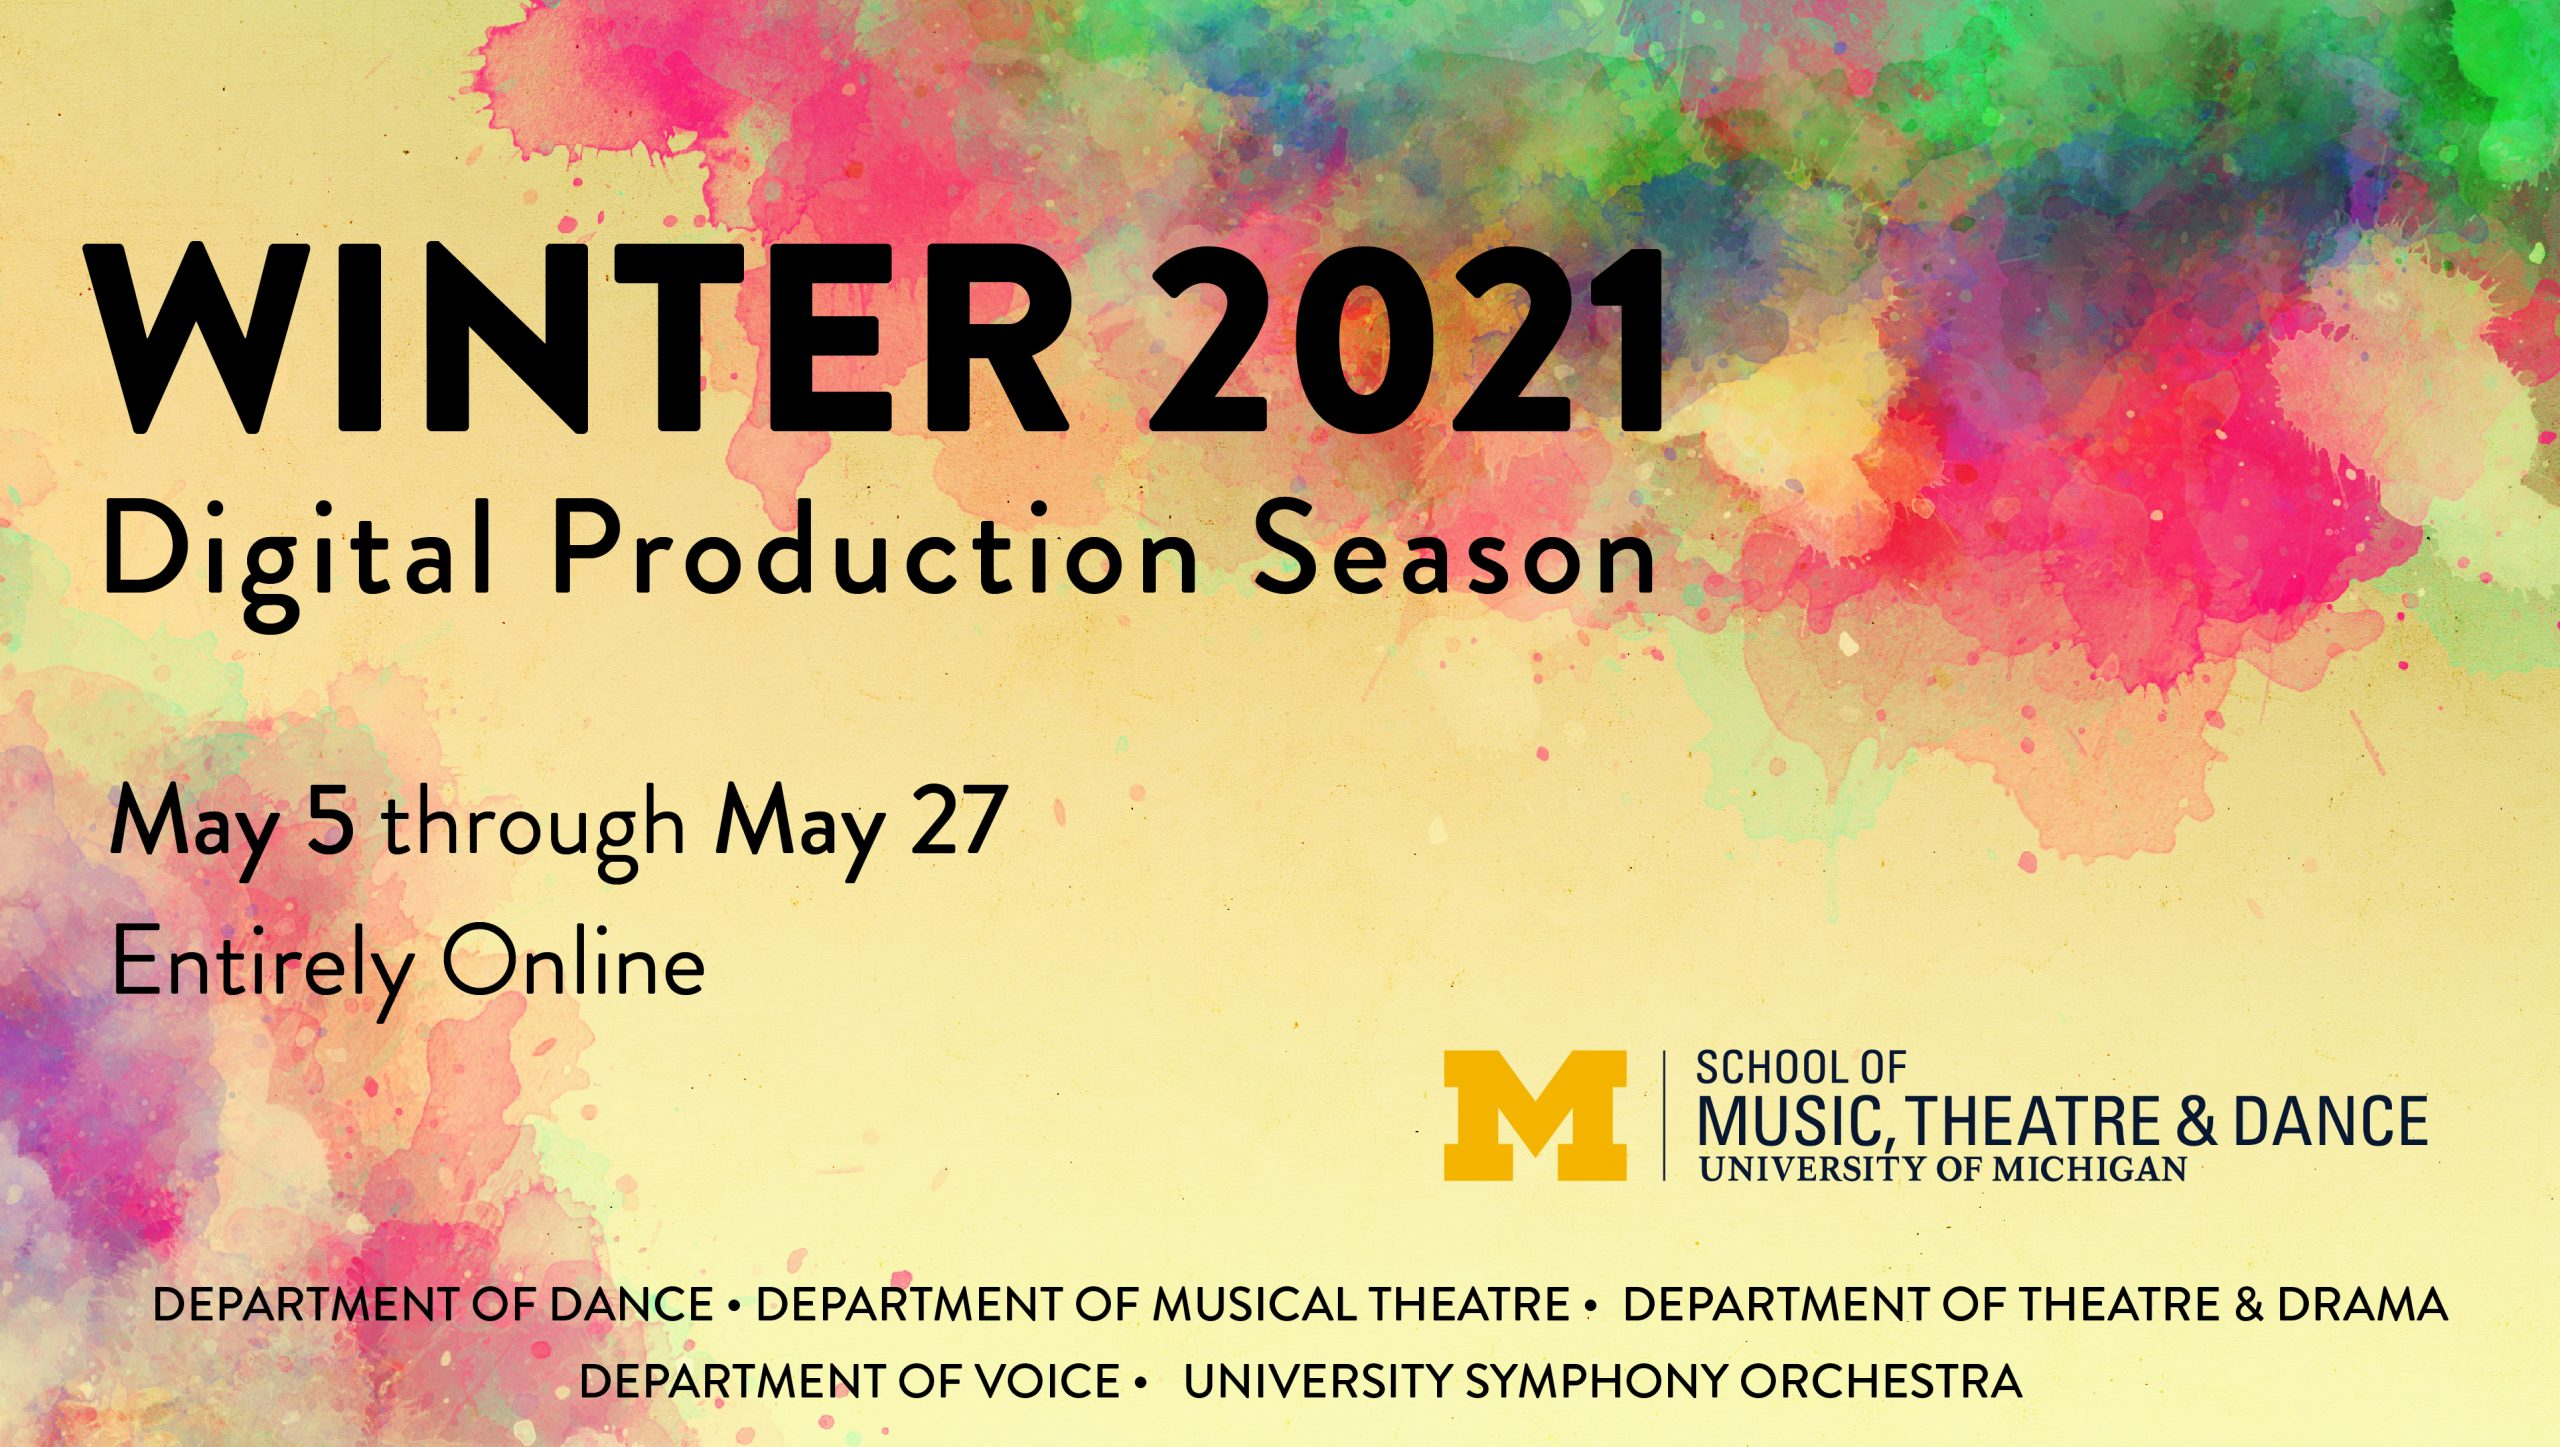 Winter 2021 Digital Production Season, May 5 through May 27, entirely online